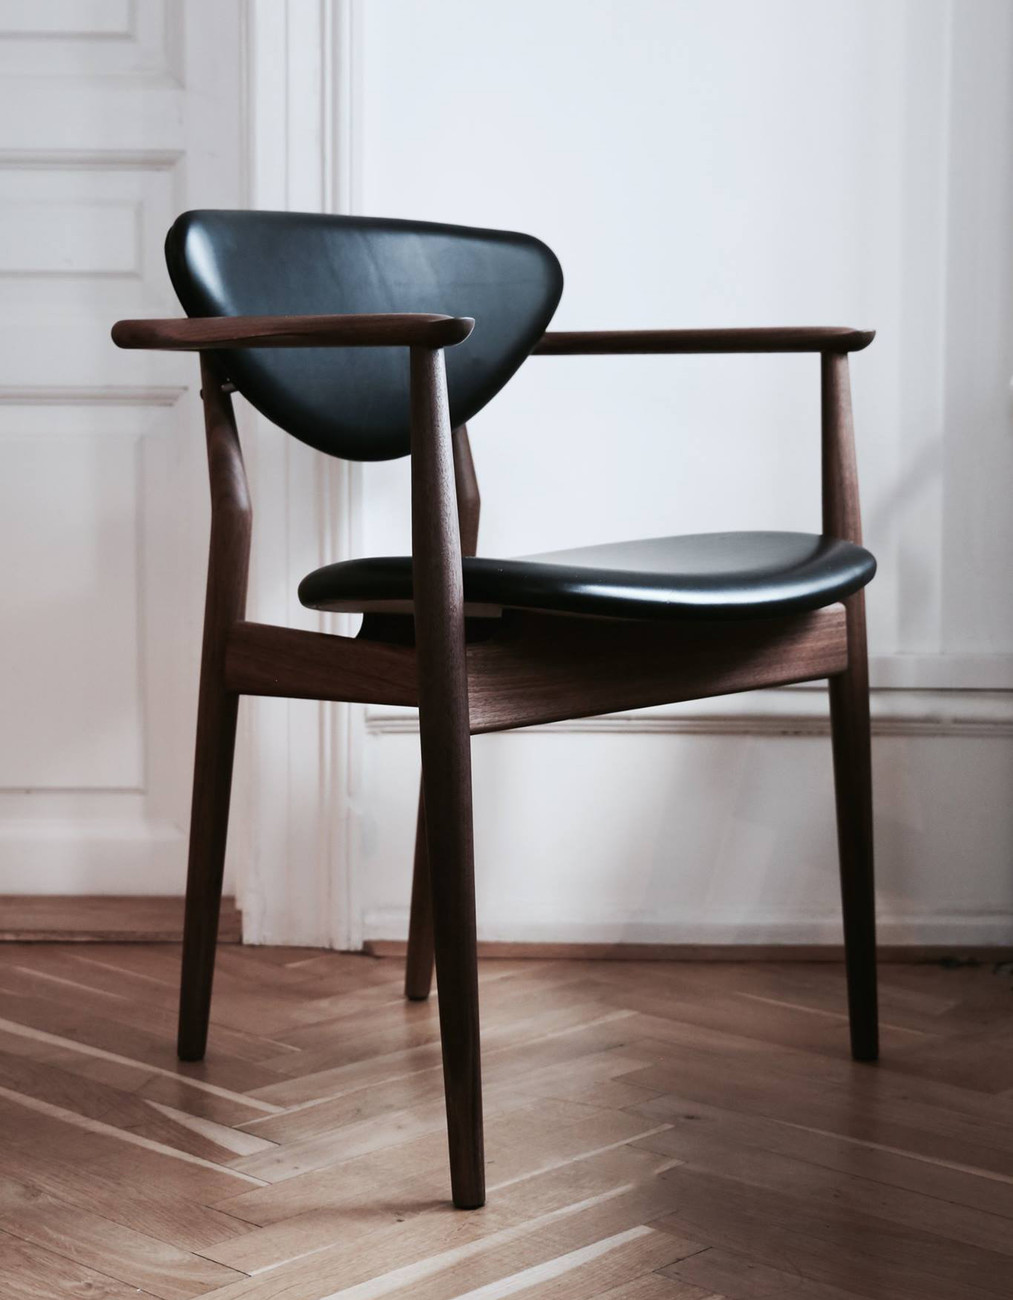 Just like its close relative the 108 Chair the 109 Chair was originally manufactured by cabinetmaker Niels Vodder. In this design it is in particular the ... & House of Finn Juhl u2013 chair 109 u2013 design Finn Juhl